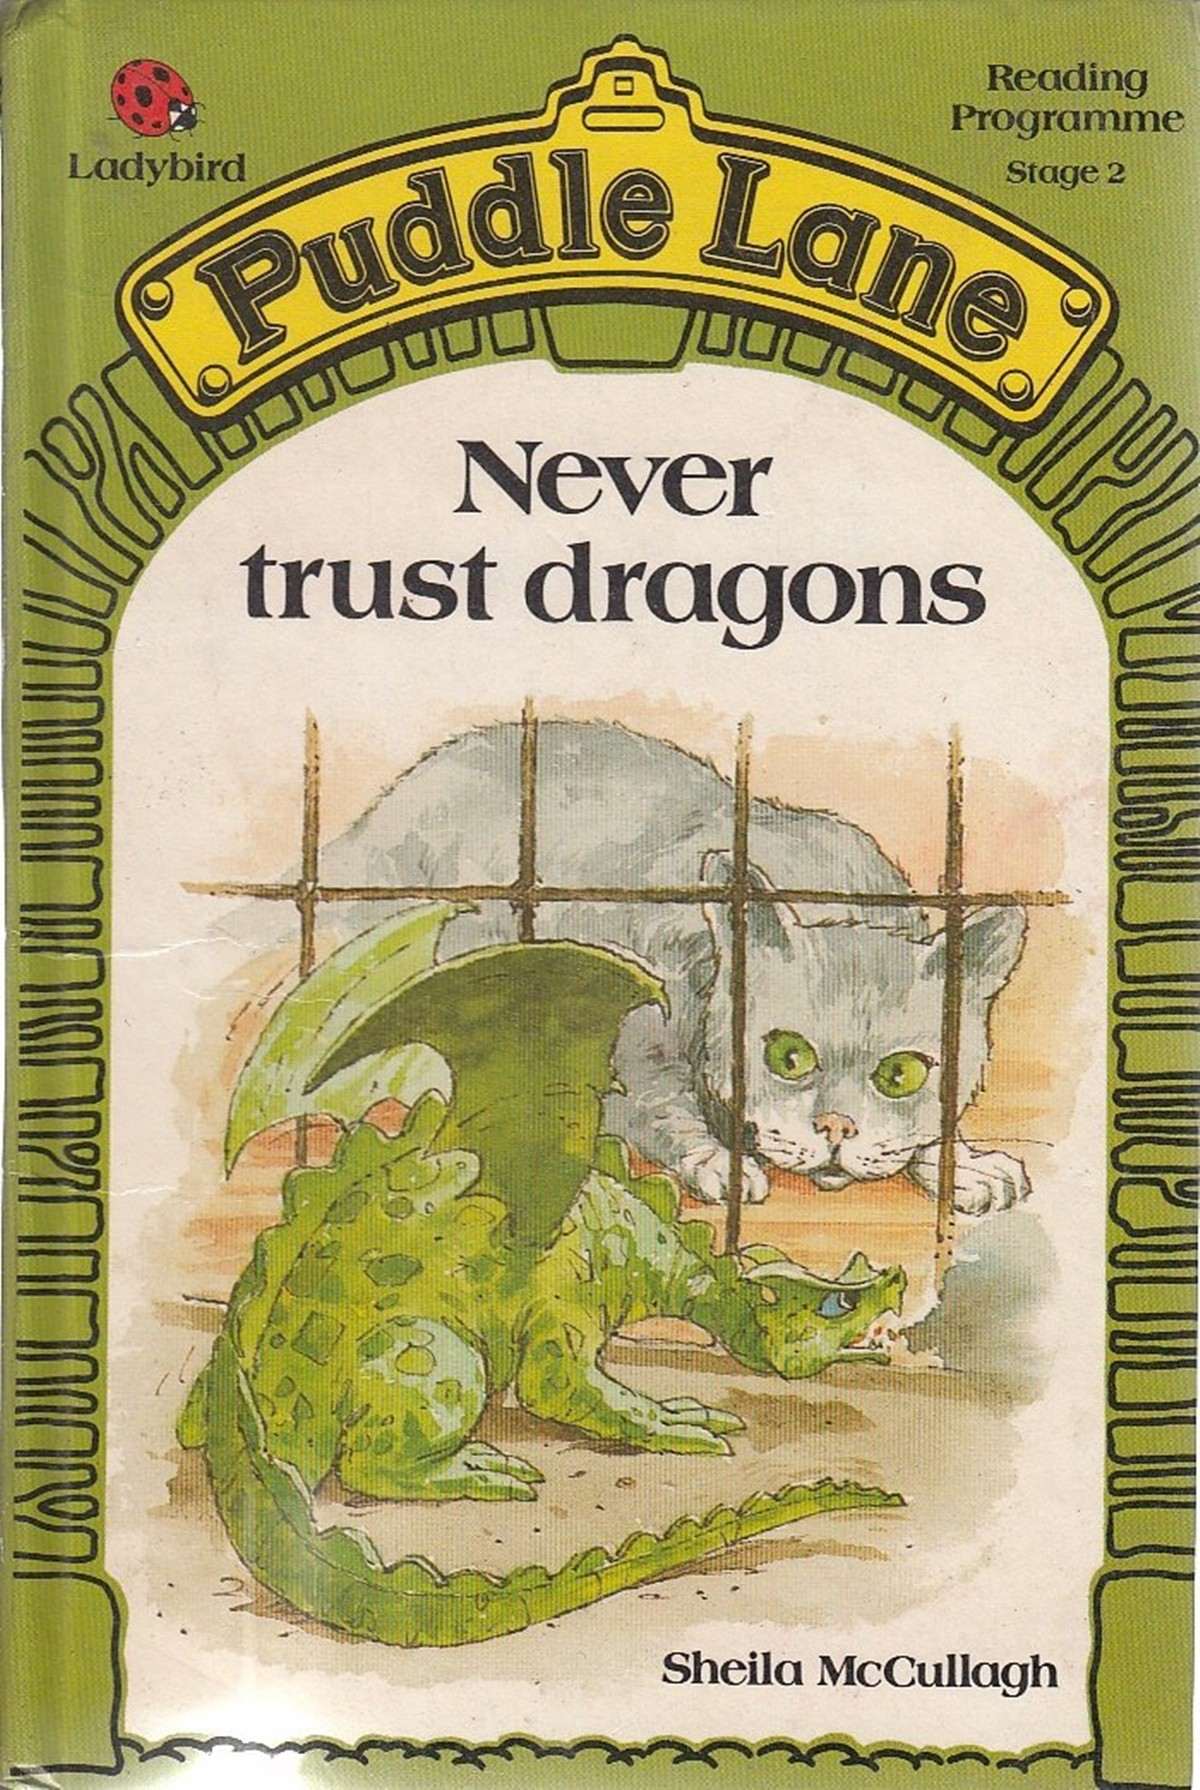 9 16 12 More Childhood Books You've Probably Forgotten About